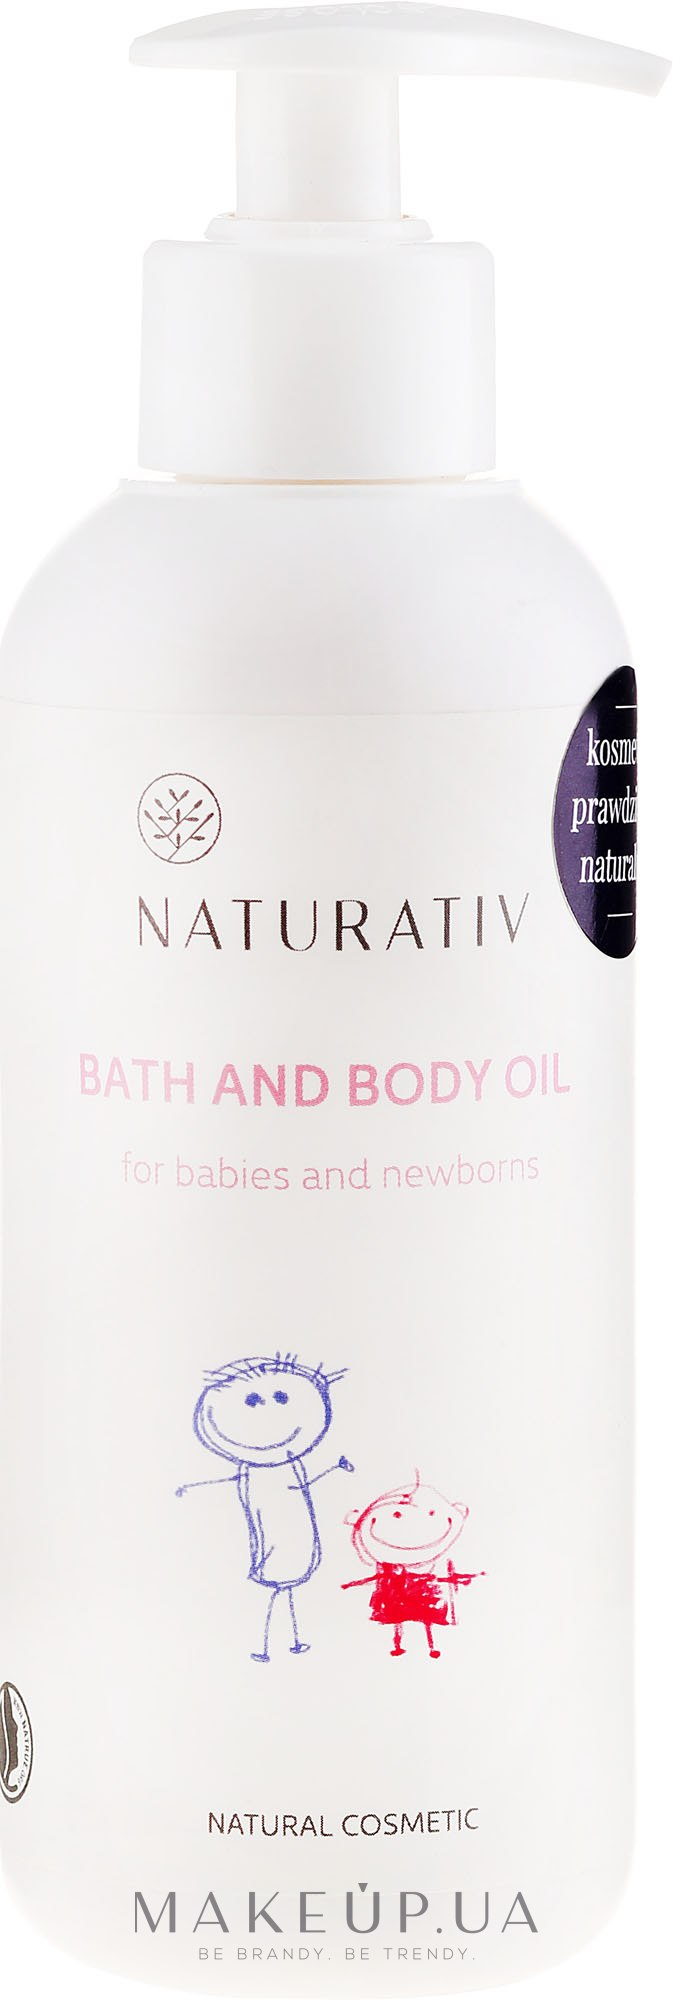 Масло для тела и ванны - Naturativ Bath and Body Oil for Infants and Baby — фото 250ml